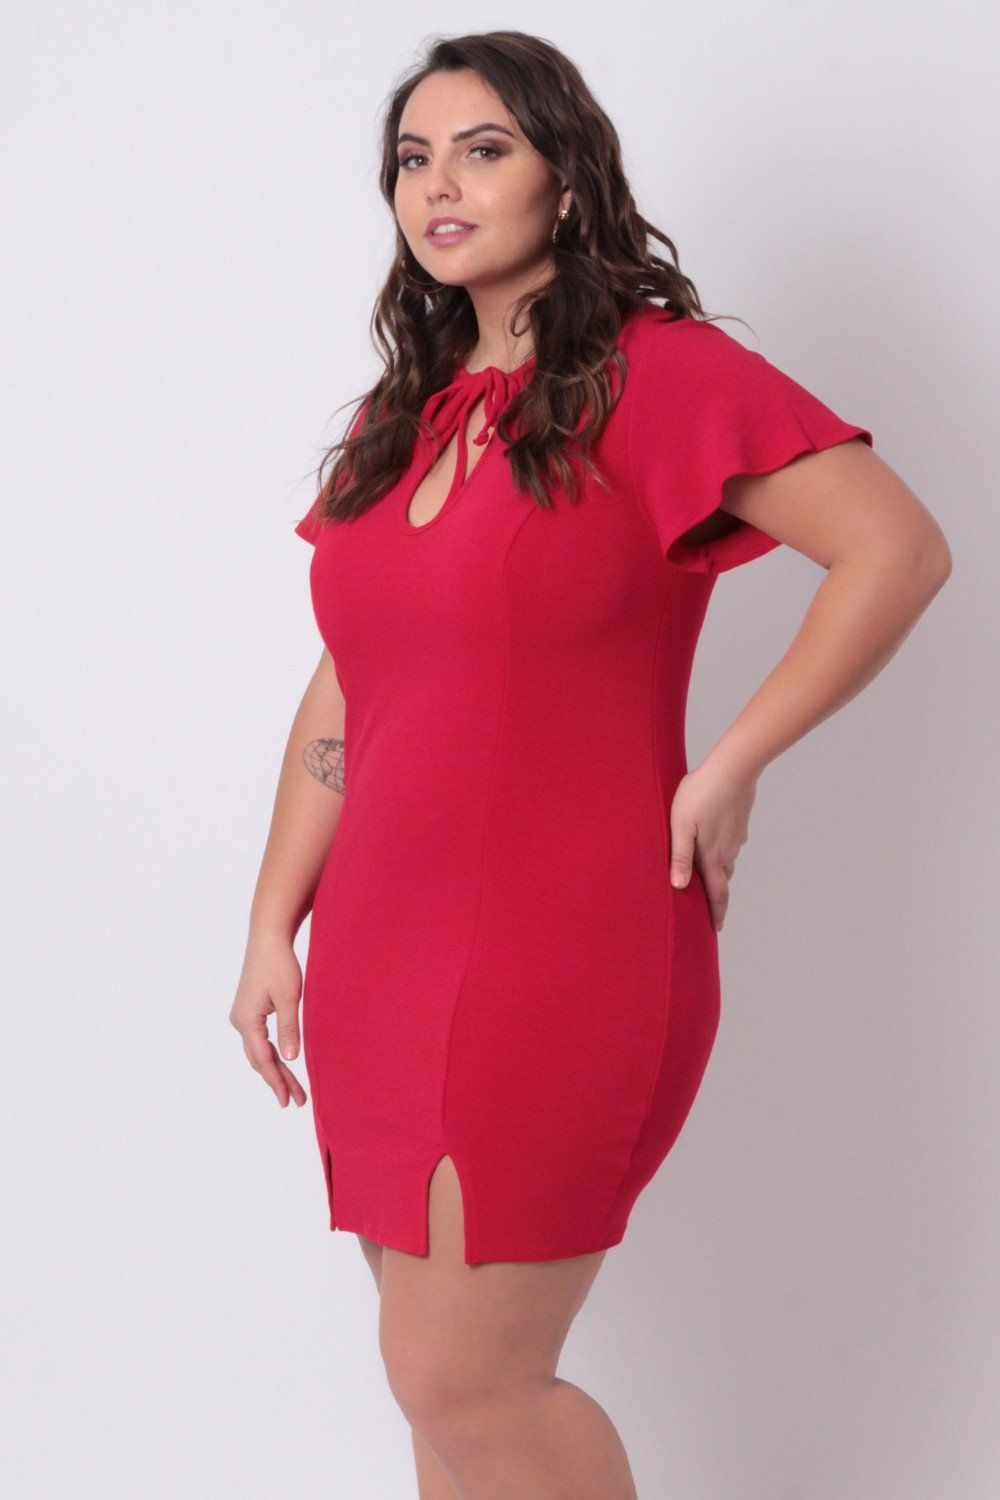 Plus Size Lady In Red Dress - Red | Plus size models, Plus ...